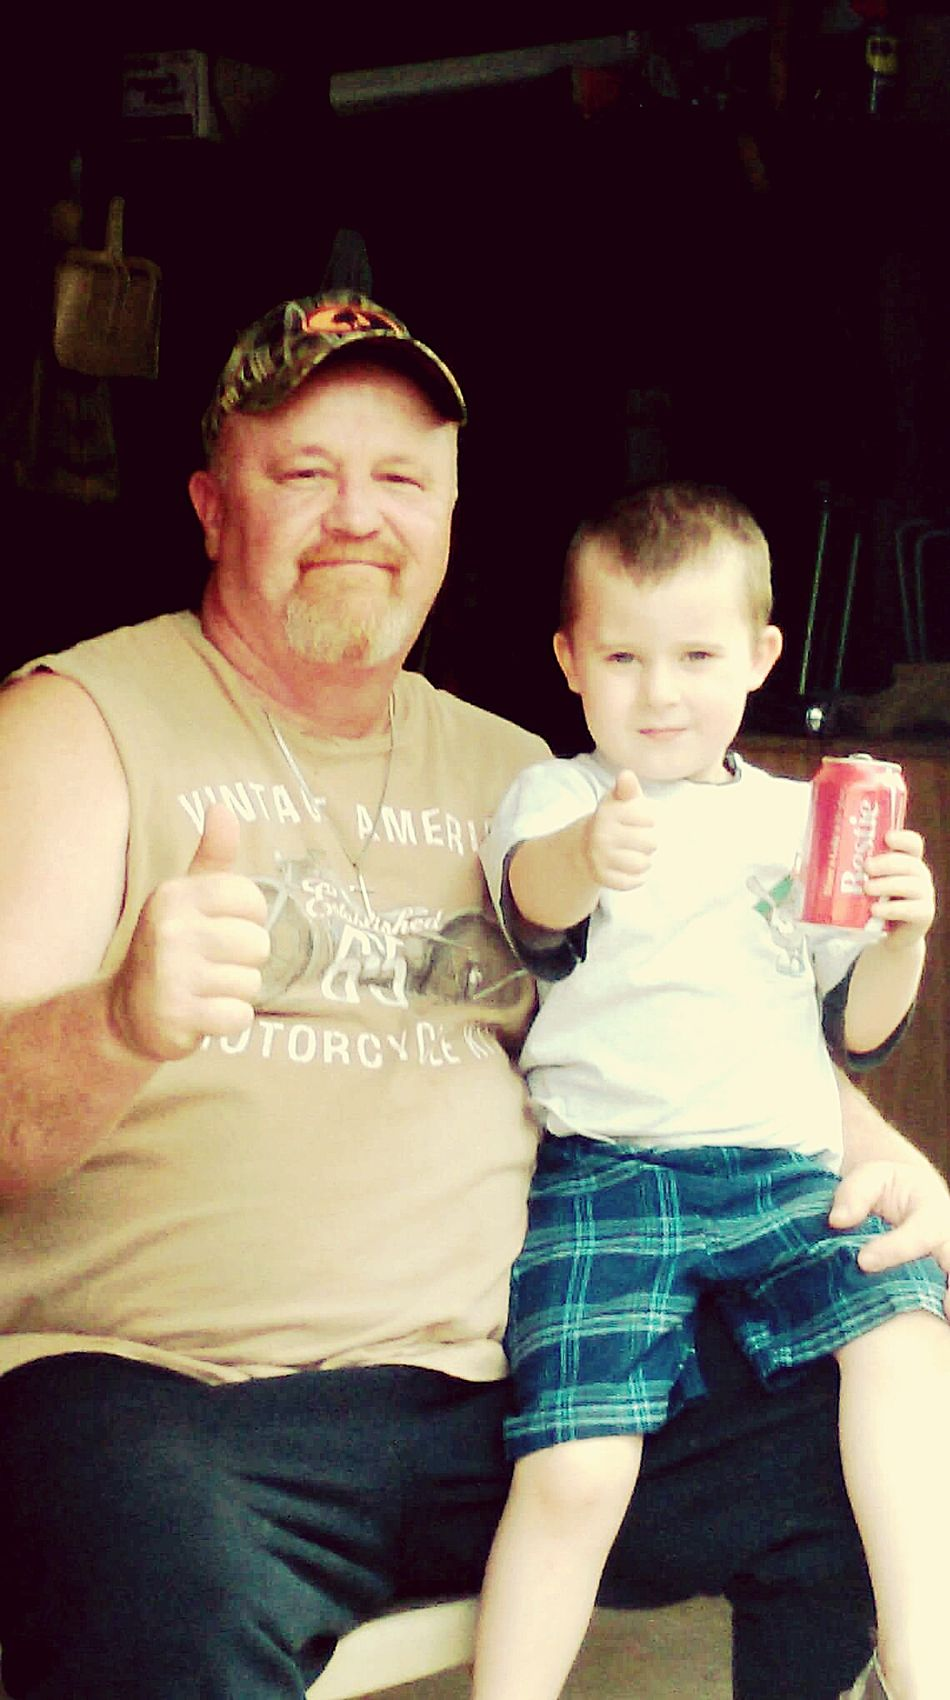 He picked out his bestie alright. Cocacola Coca-cola Shareacoke Cheese! Hanging Out Besties Drinking Coke Buddies Best Friends Grandpa Grandson Grandparent Thumbs Up Summer Cool Kids Kids Being Kids Kids Having Fun Boys Five Years Old